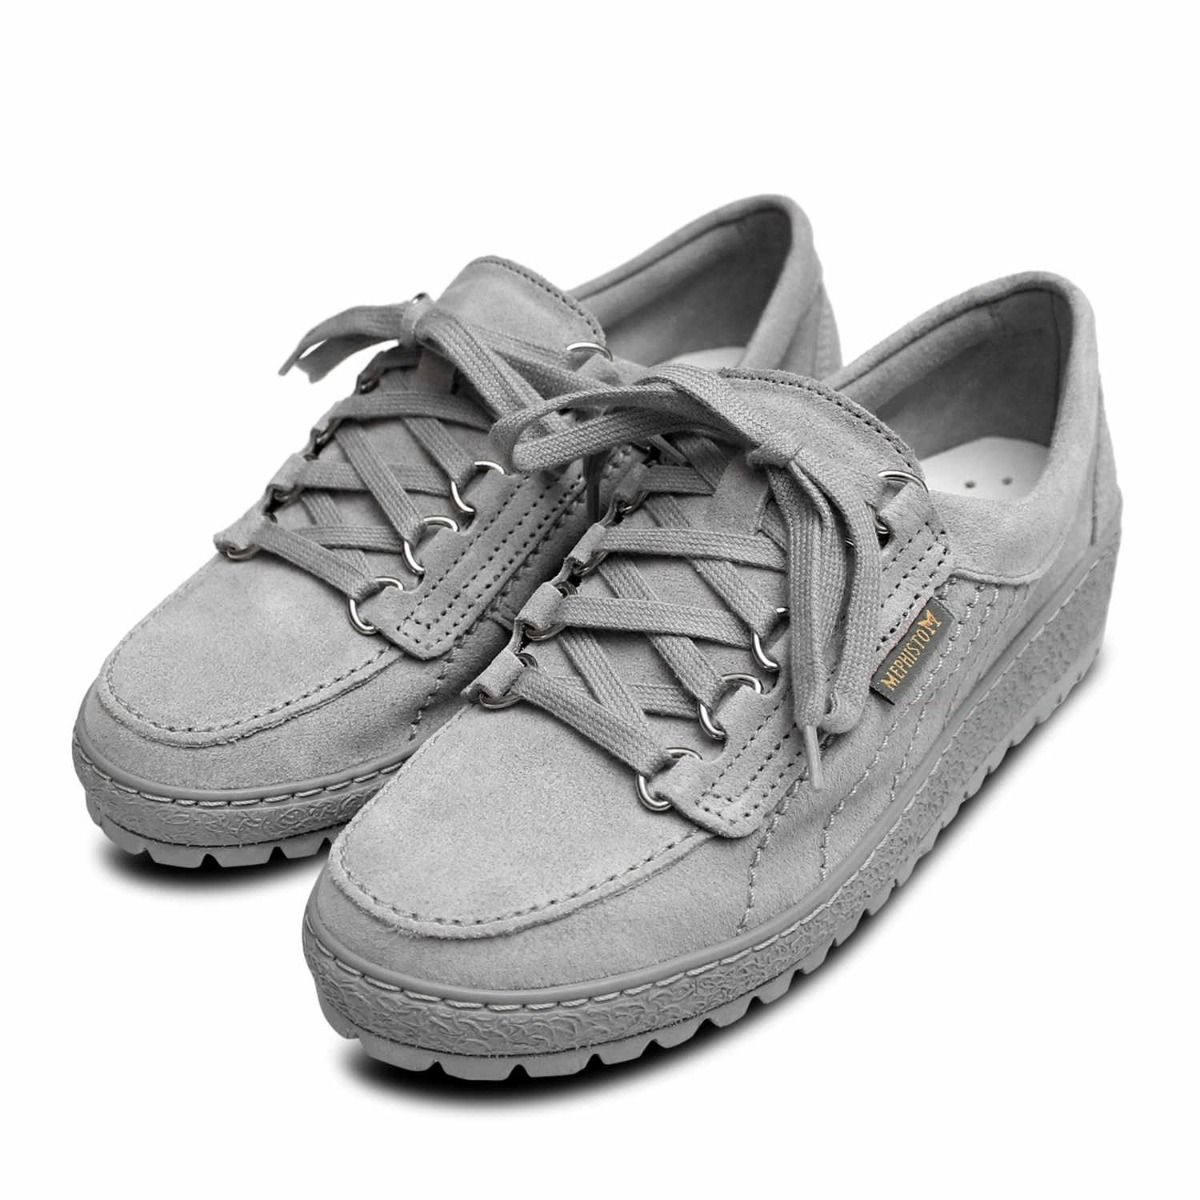 Mephisto Shoes in Light Grey Suede Leather